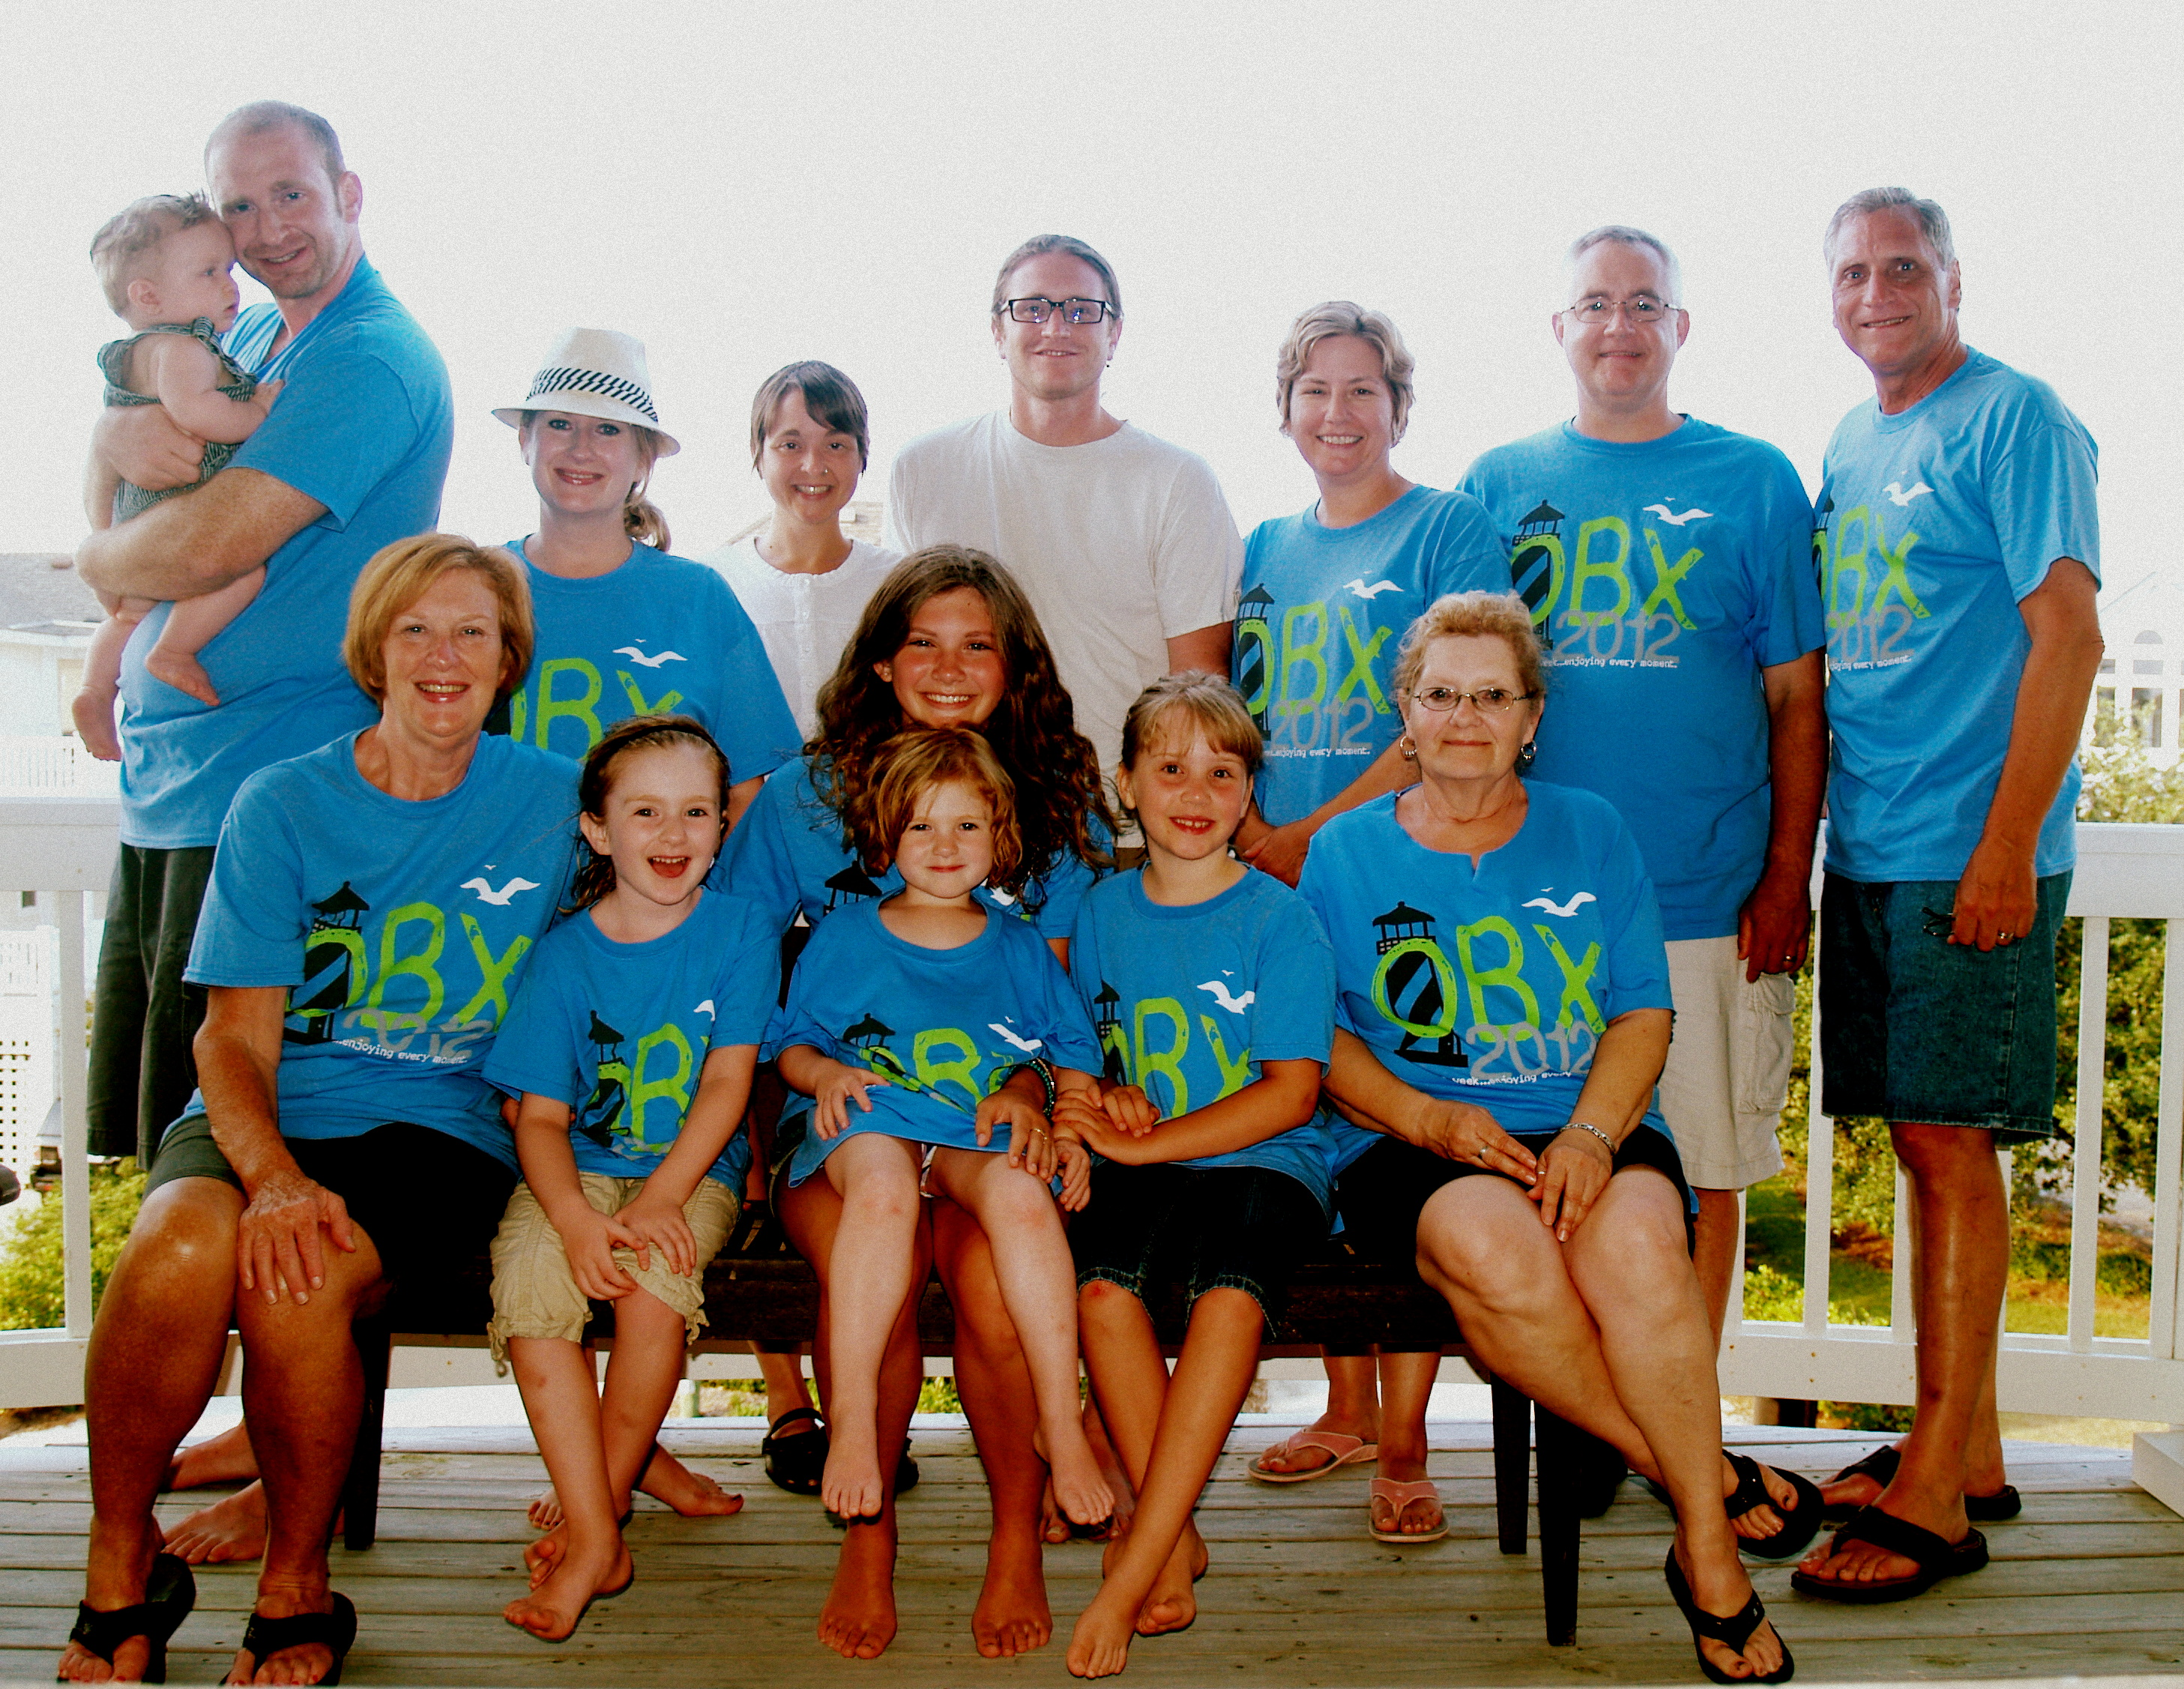 Custom t shirts for outer banks family vacation shirt for Custom t shirts family vacation